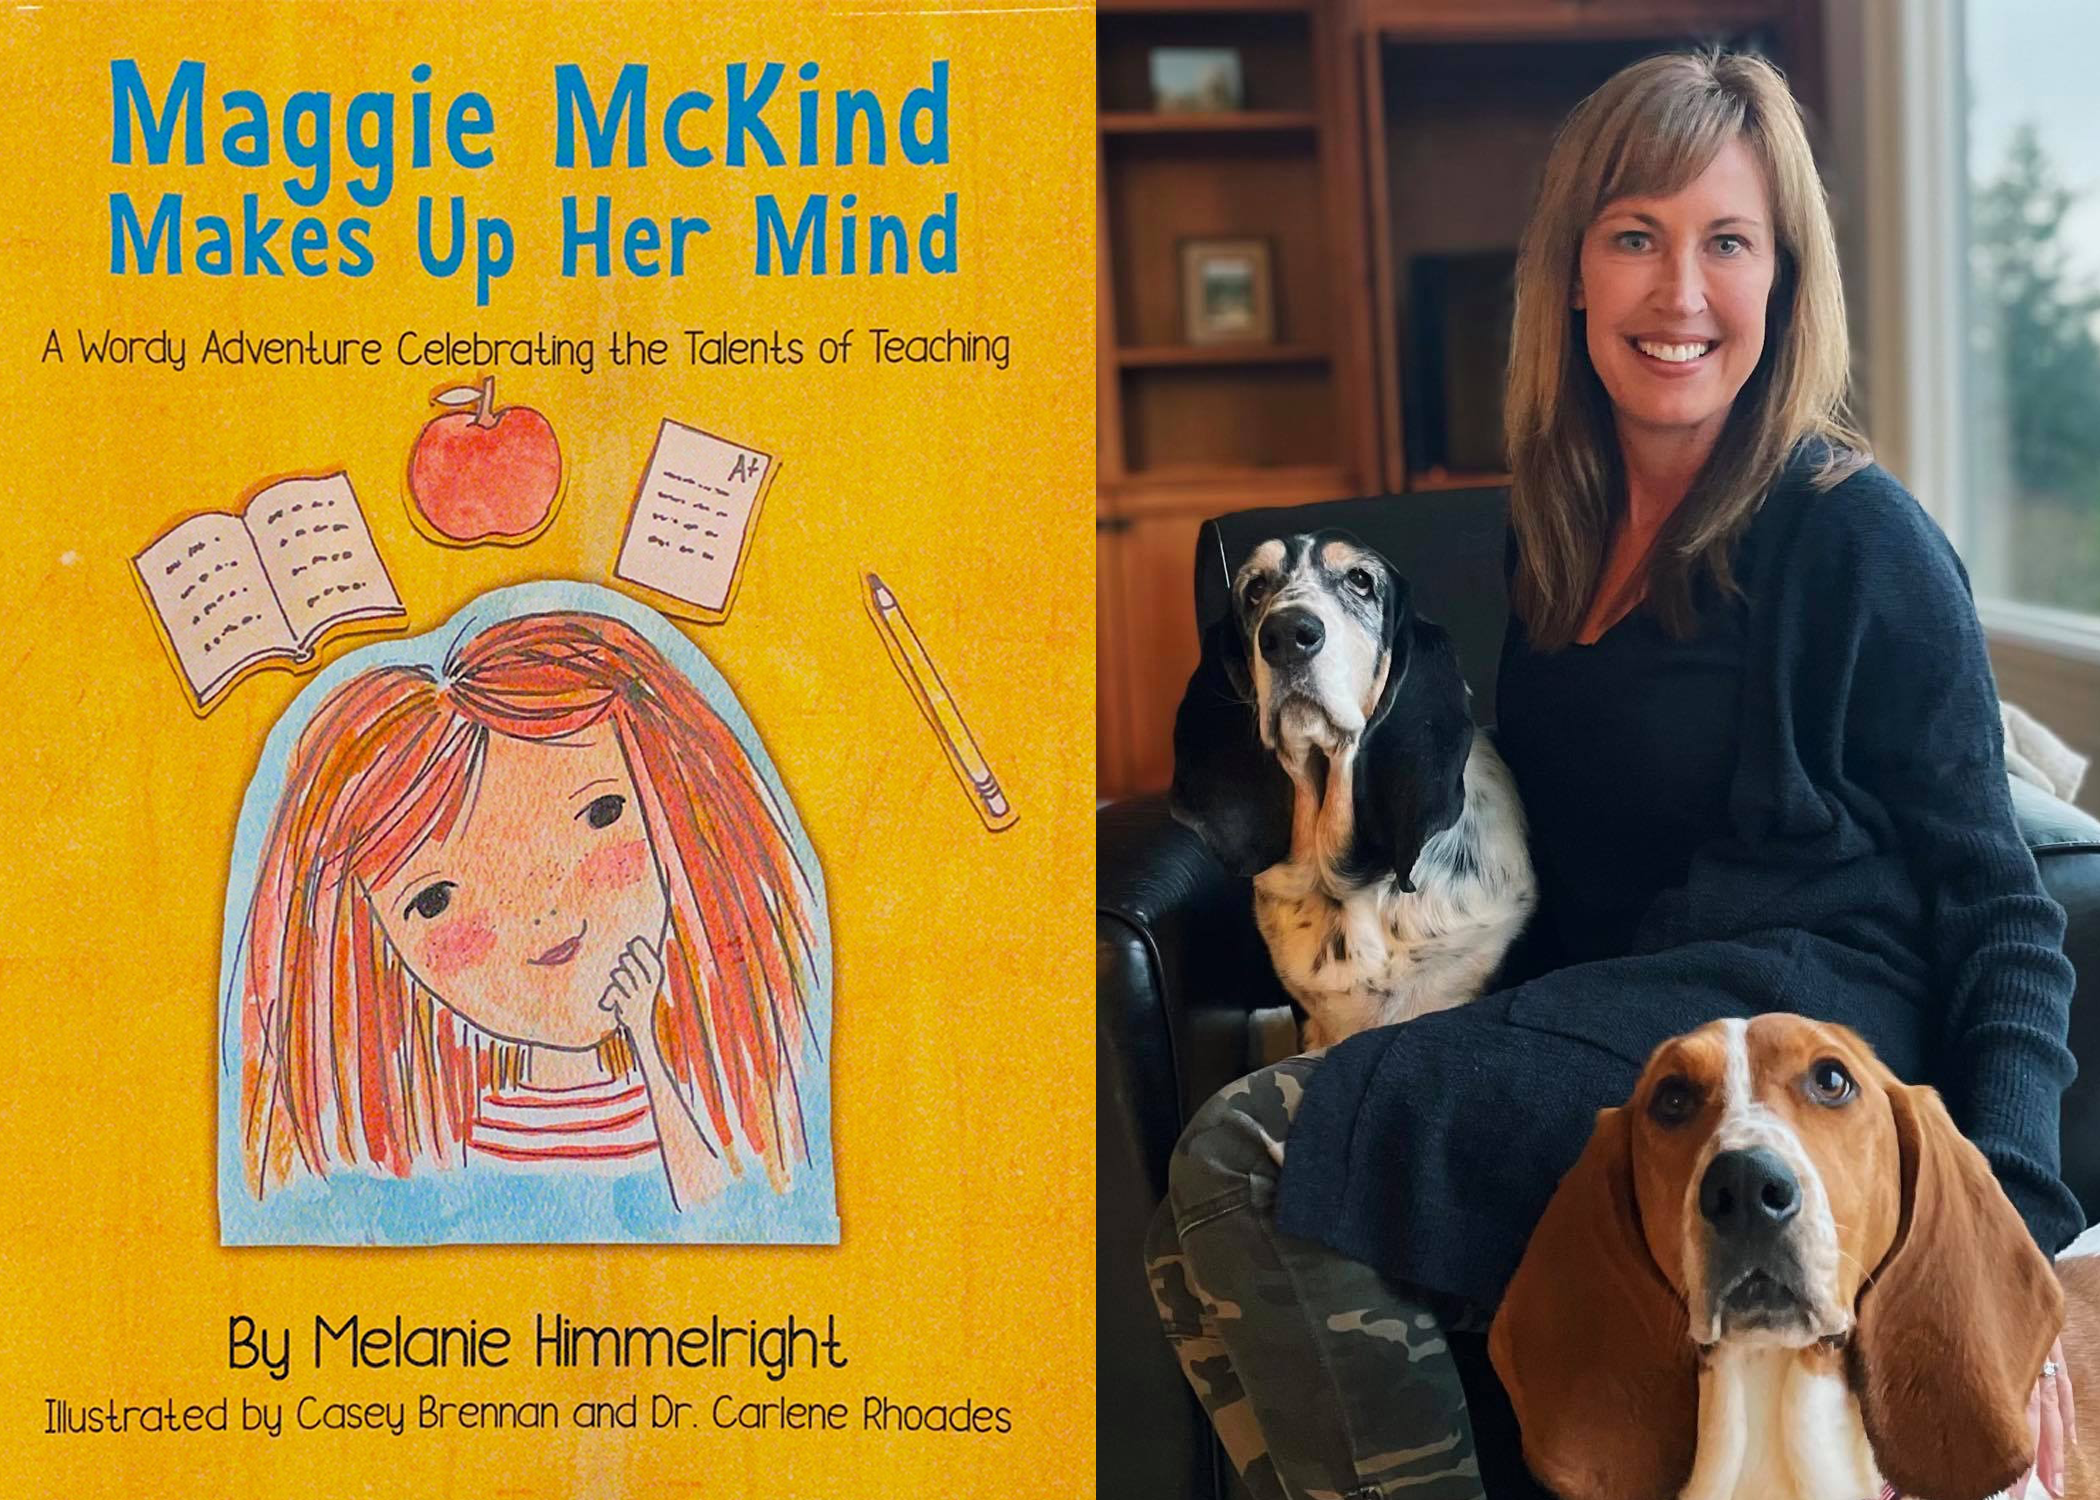 image of Melanie Himmelright and book cover, Maggie McKind Makes Up Her Mind